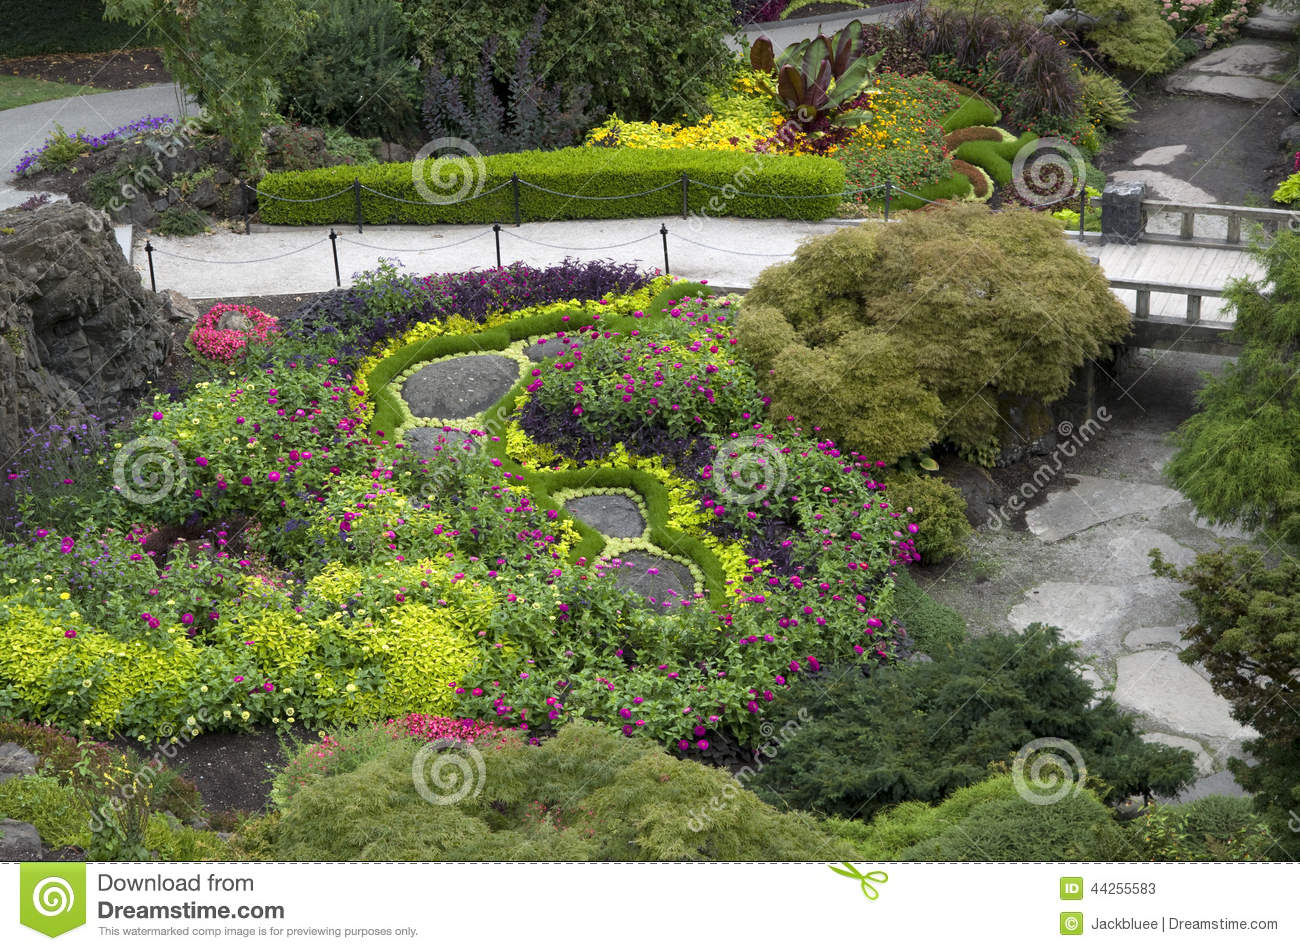 Garden design stock photo image 44255583 for Landscape design canada